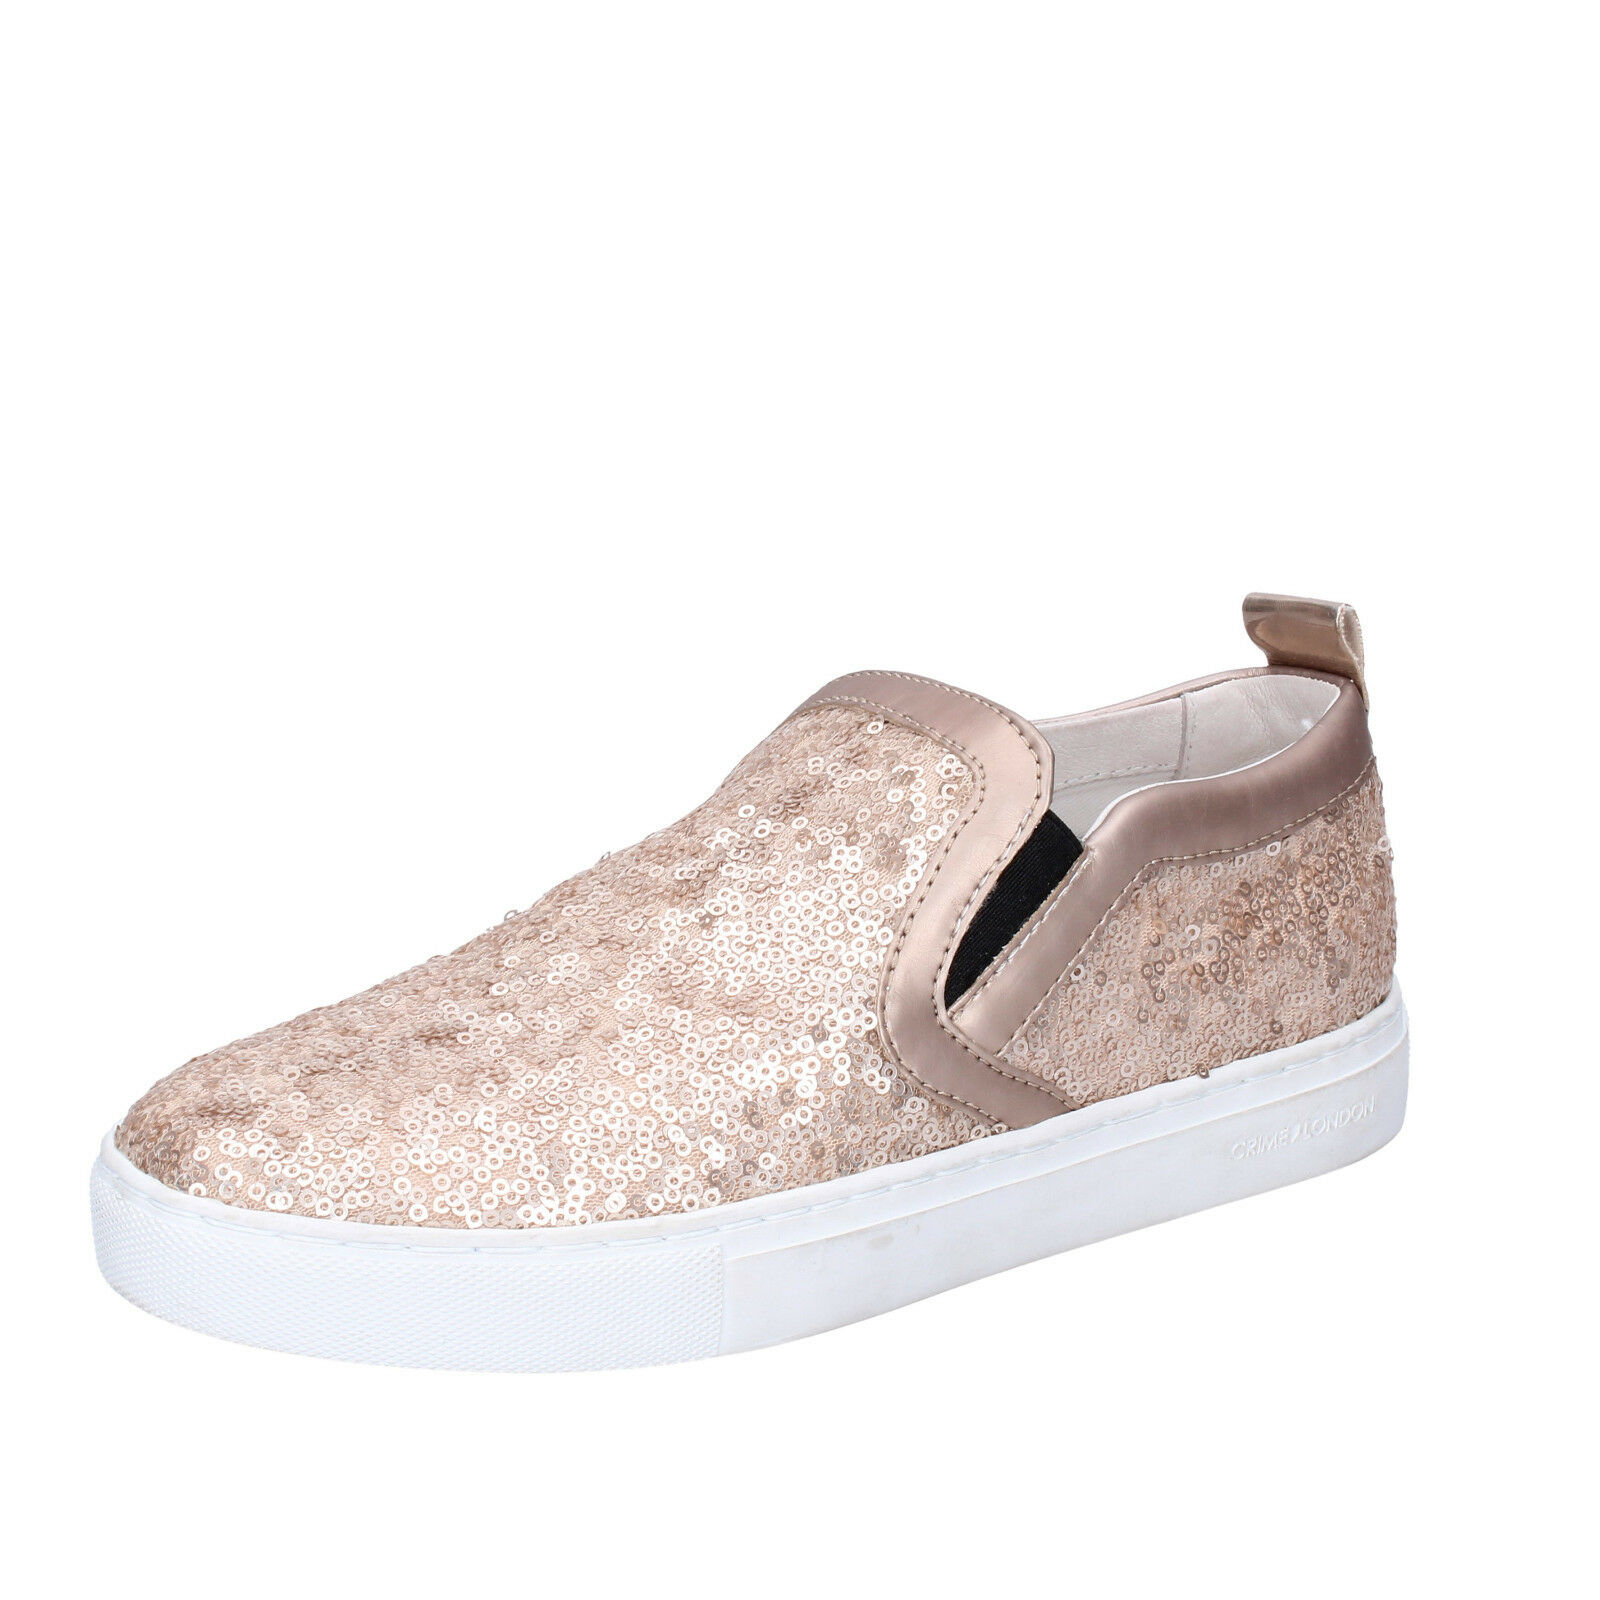 Femme   chaussures  CRIME LONDON 6 (EU 39) slip on Rose pailettes leather BT457-39